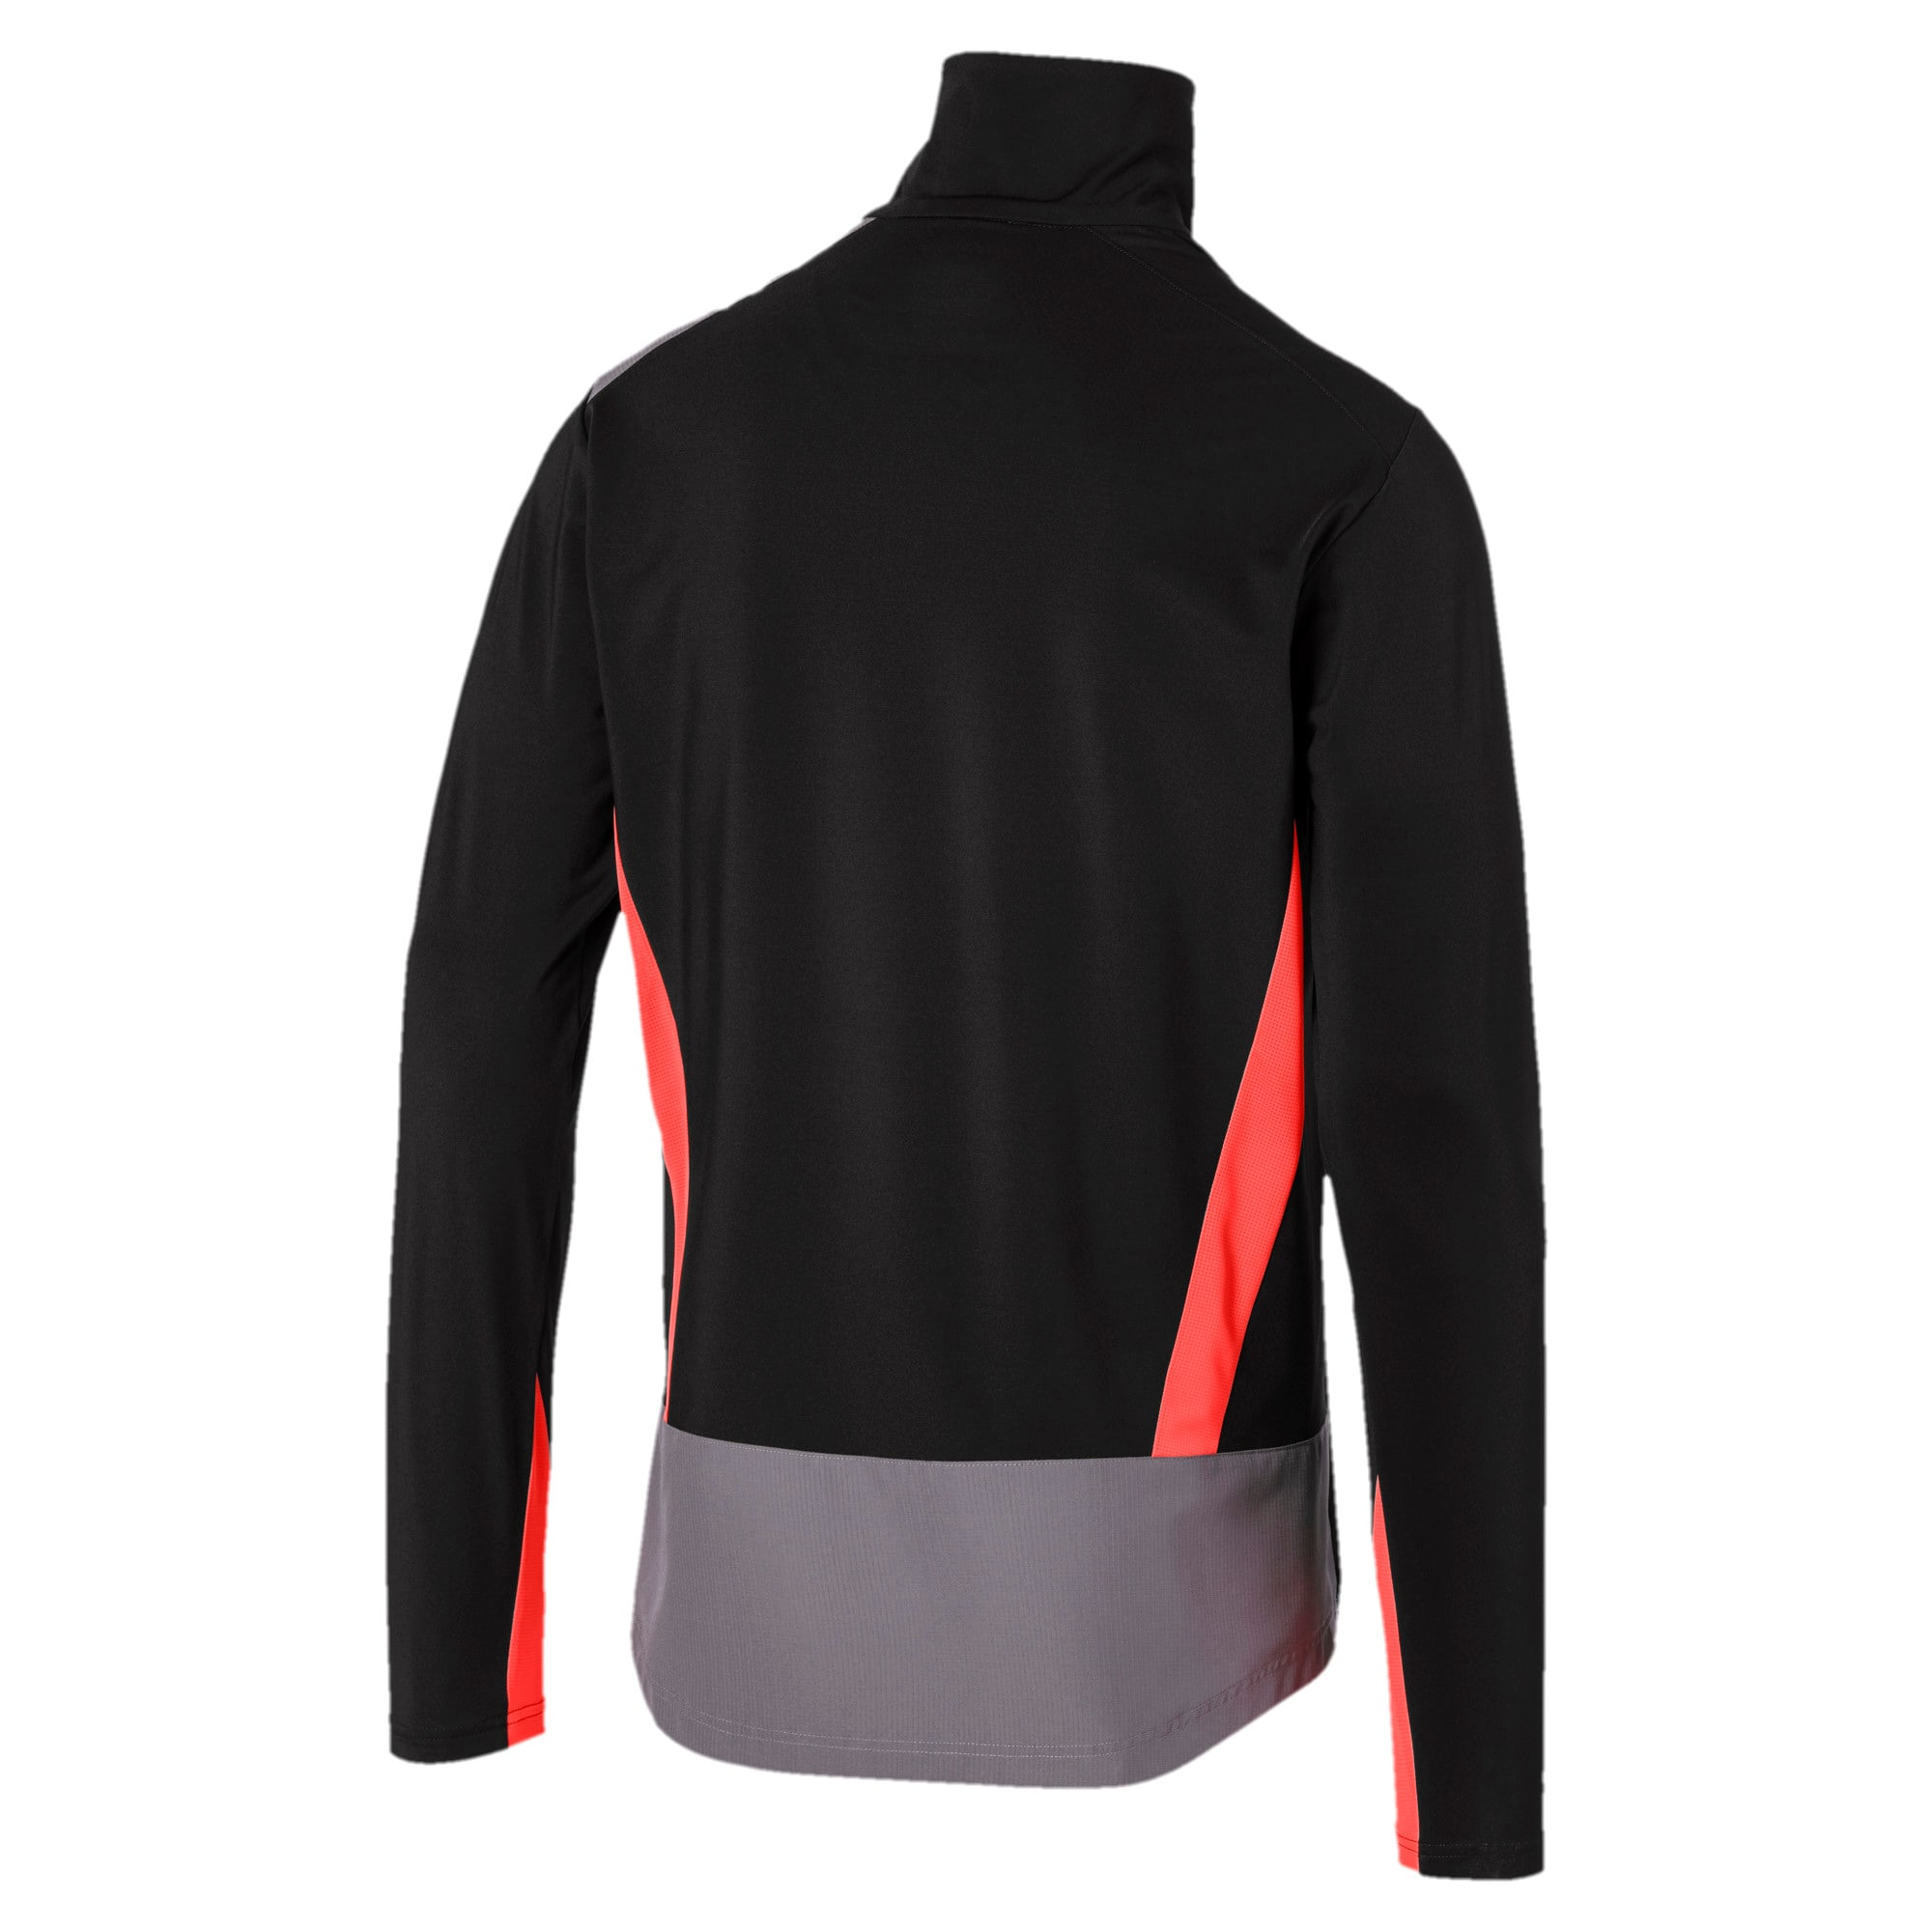 Thumbnail 5 of Quarter Zip Men's Top, Puma Black-Nrgy Red, medium